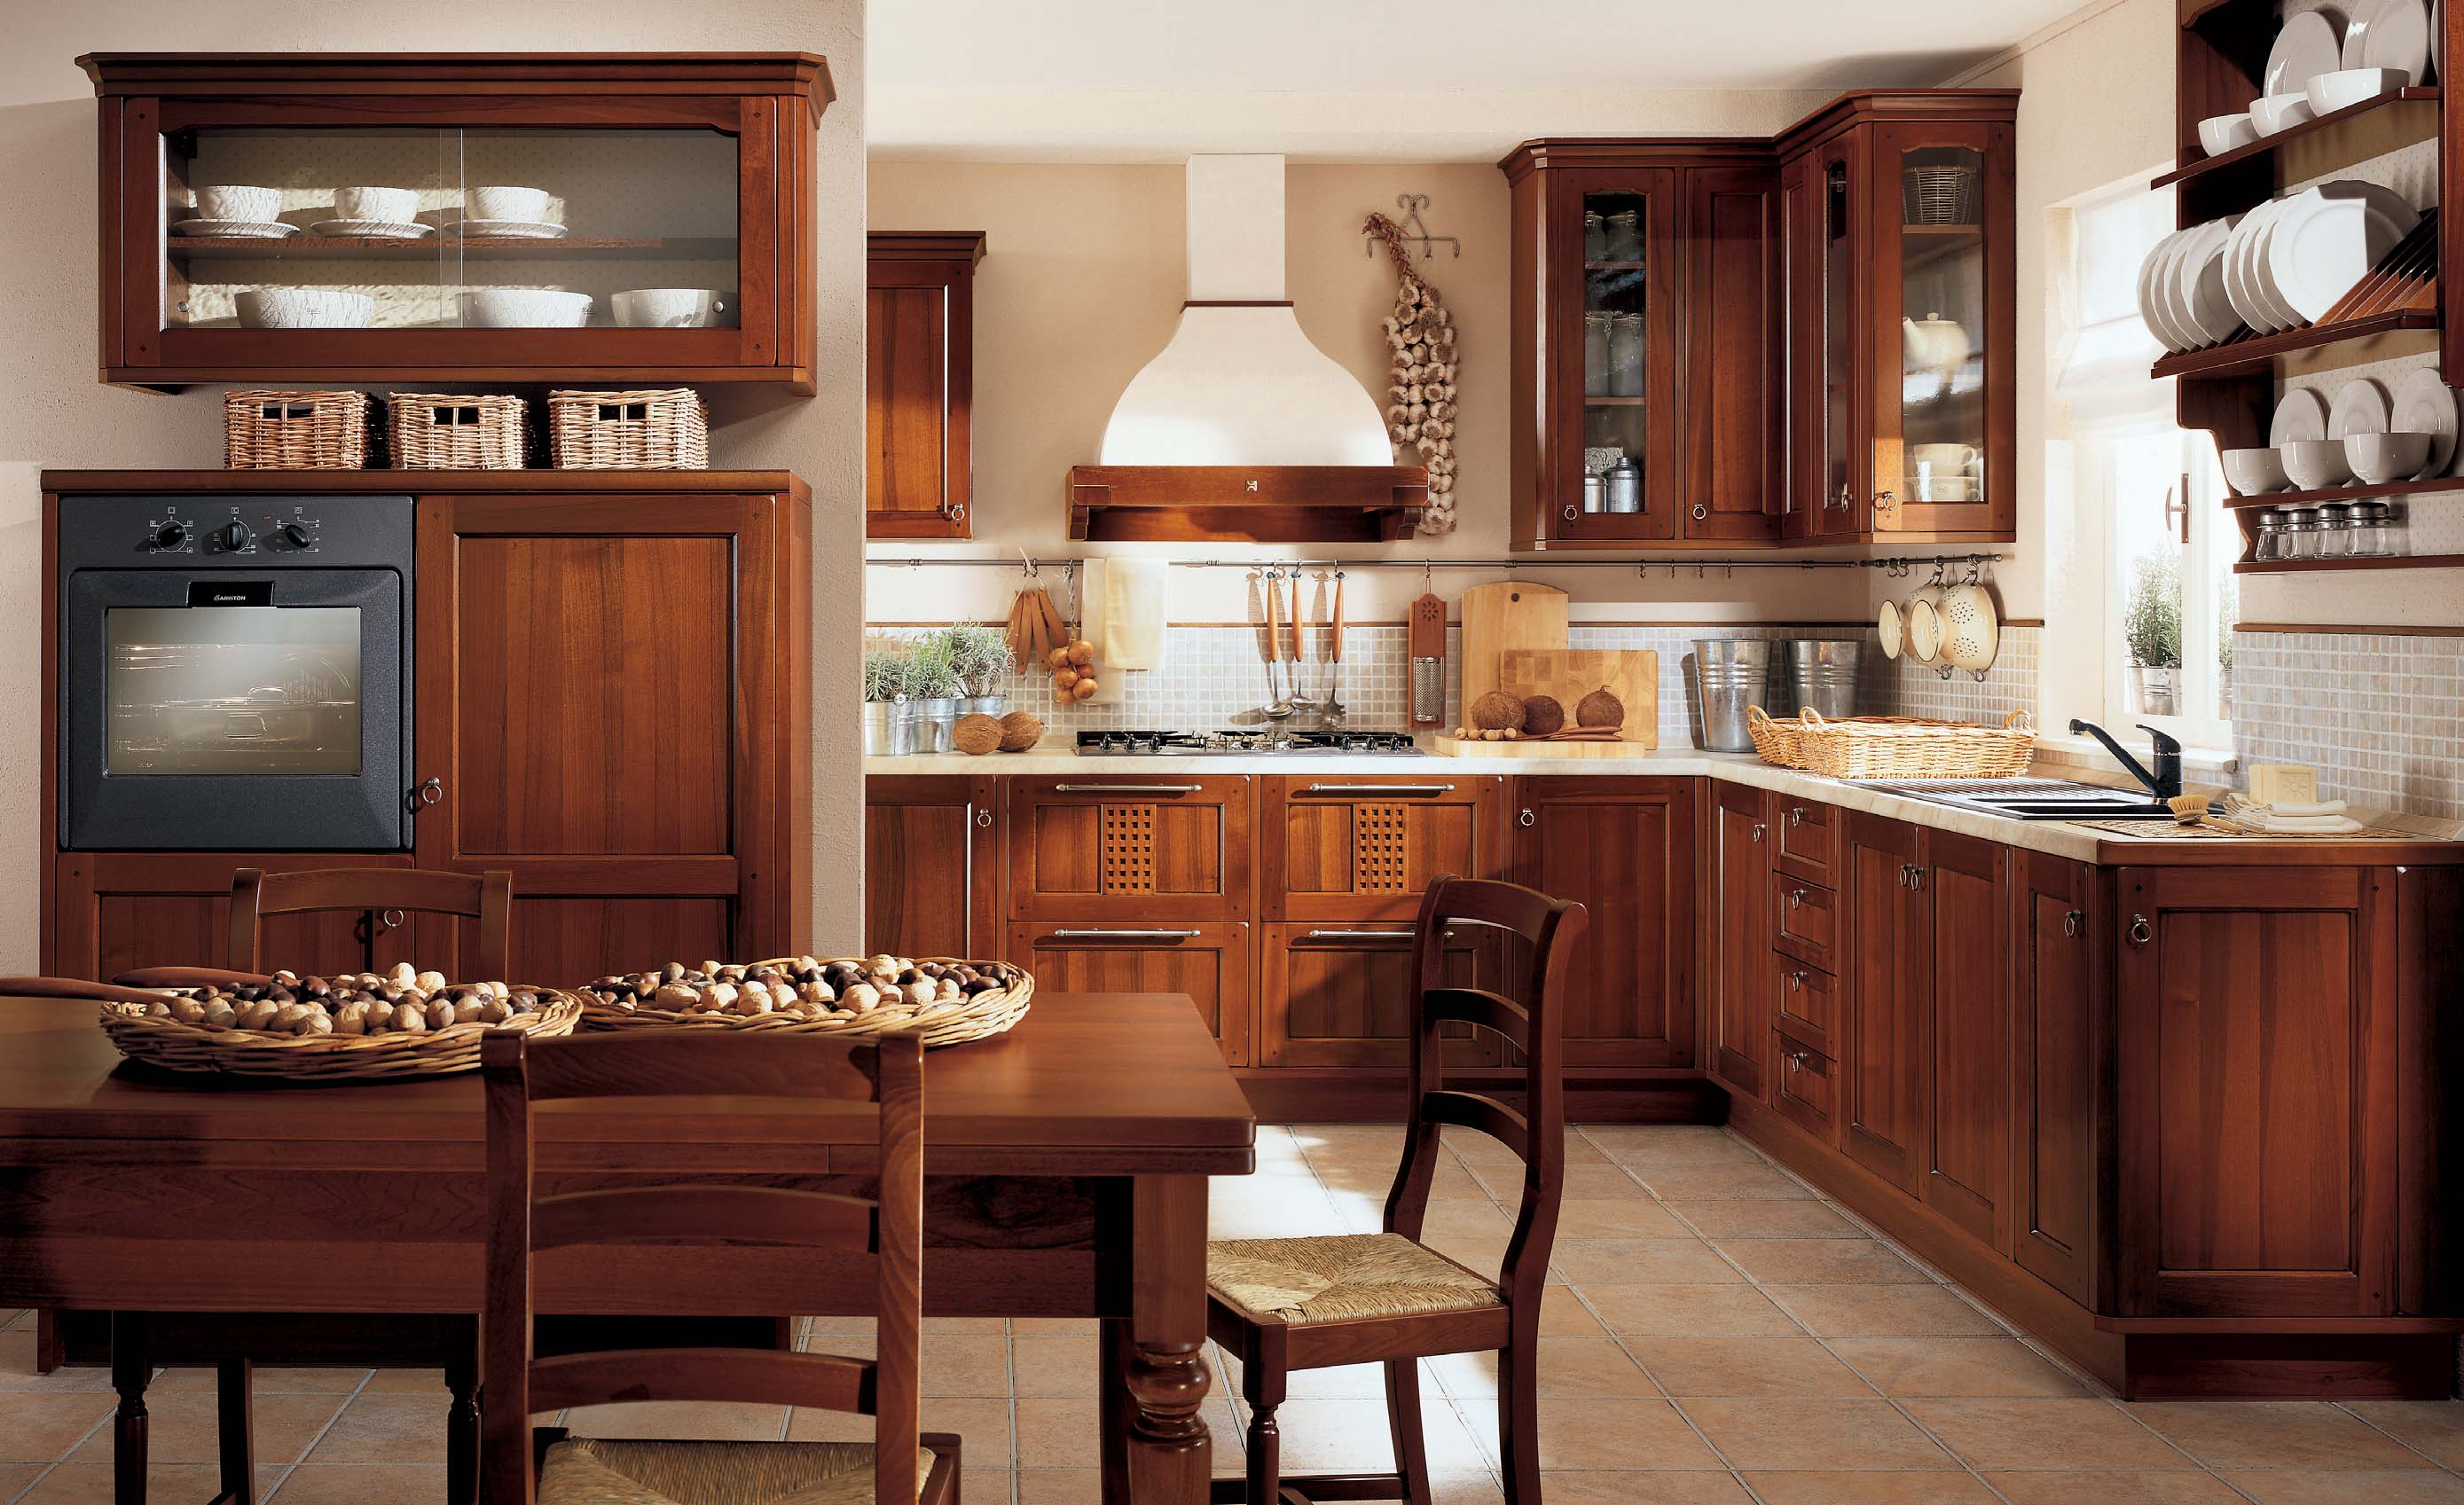 Magnificent Traditional Small Kitchen Design Ideas 2778 x 1697 · 441 kB · jpeg